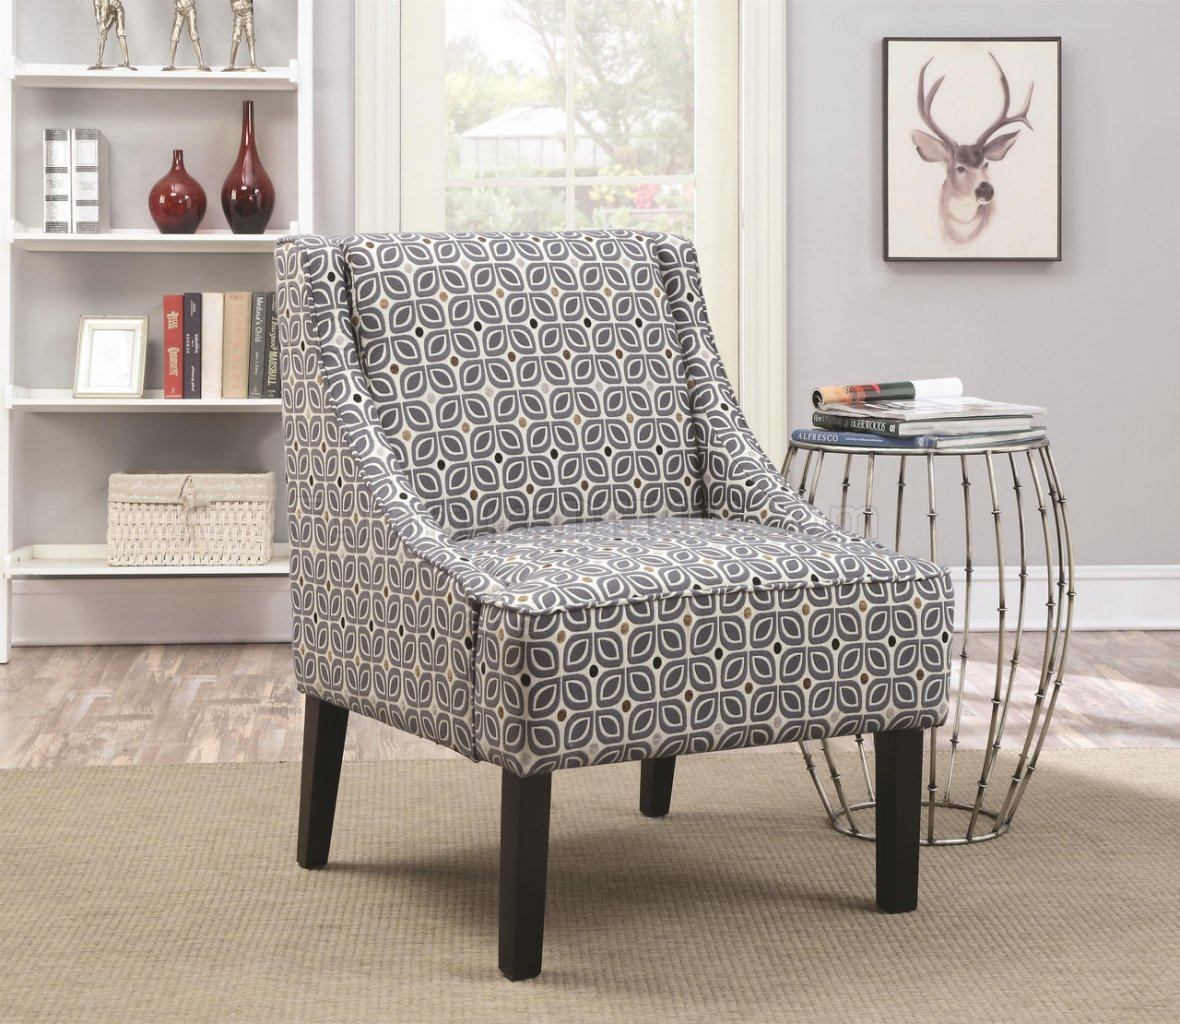 902604 Accent Chair Set of 2 in Fabric by Coaster